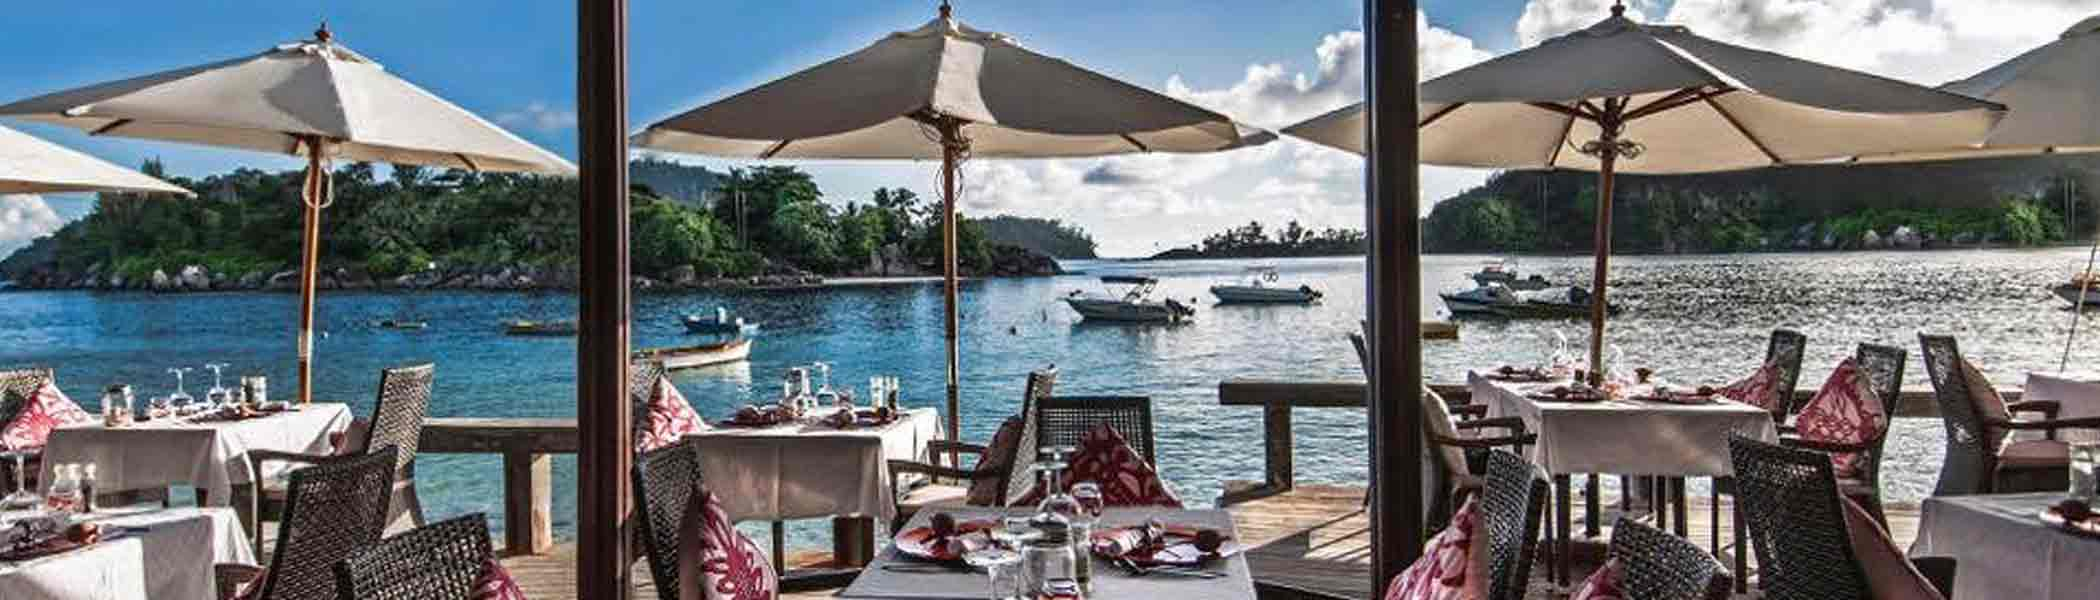 le-delplace, Bars and restaurants in Seychelles Islands